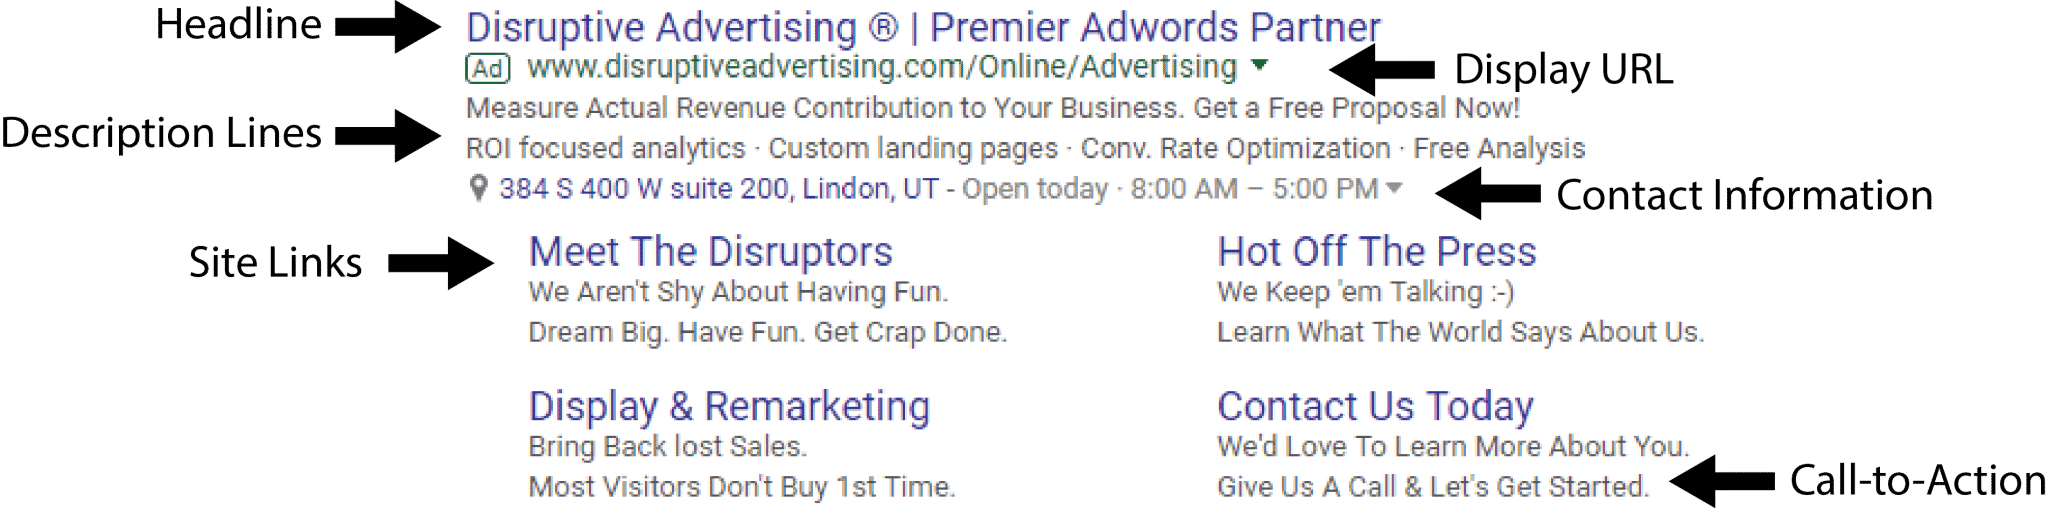 Google Ads: Anatomy of a Google Text Ad | Disruptive Advertising